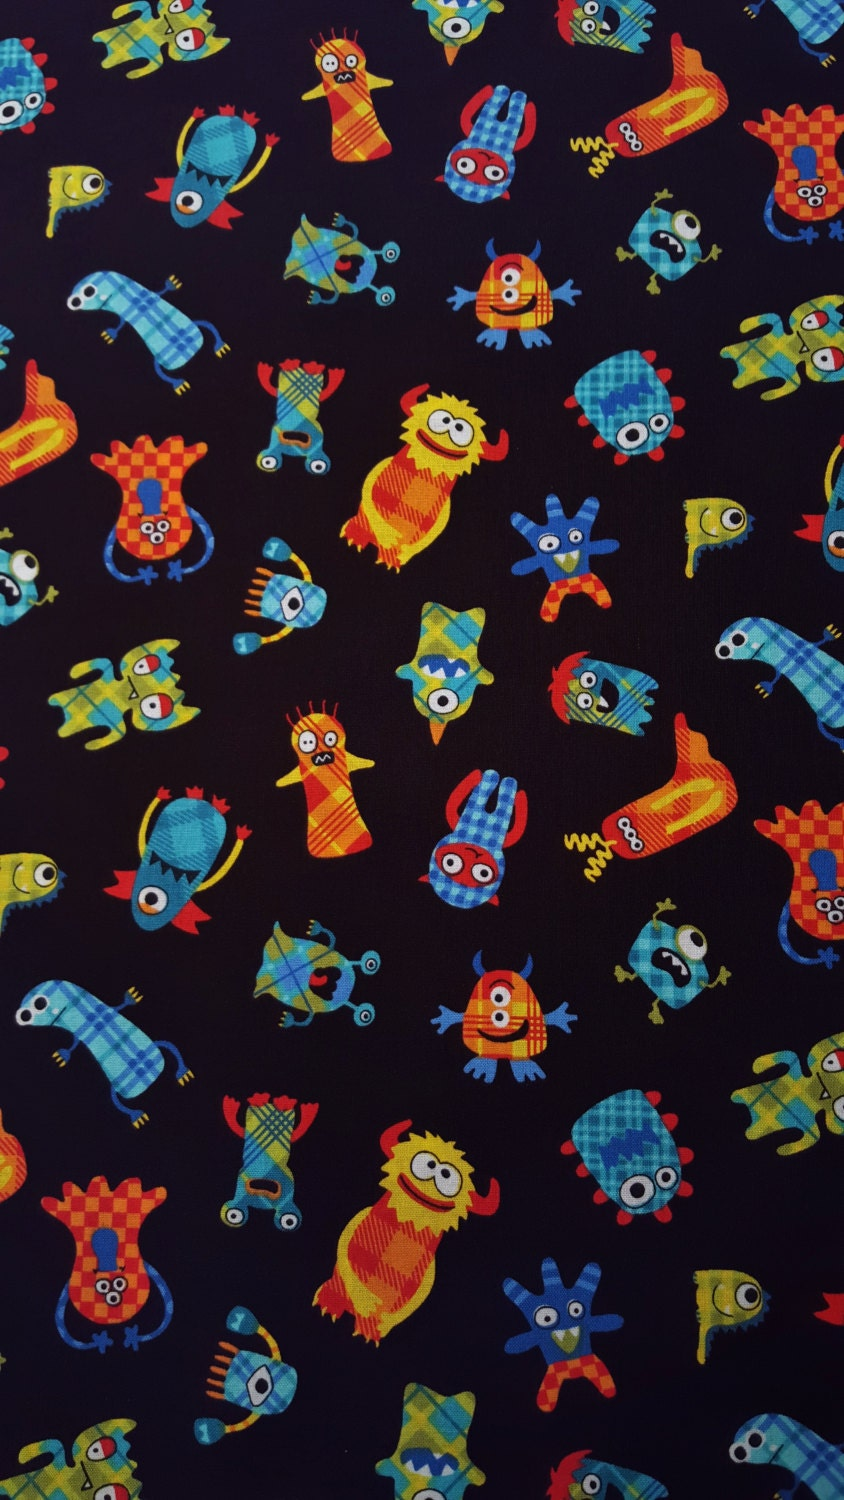 Cotton fabric monster plaid black patterned monsters for Bright childrens fabric